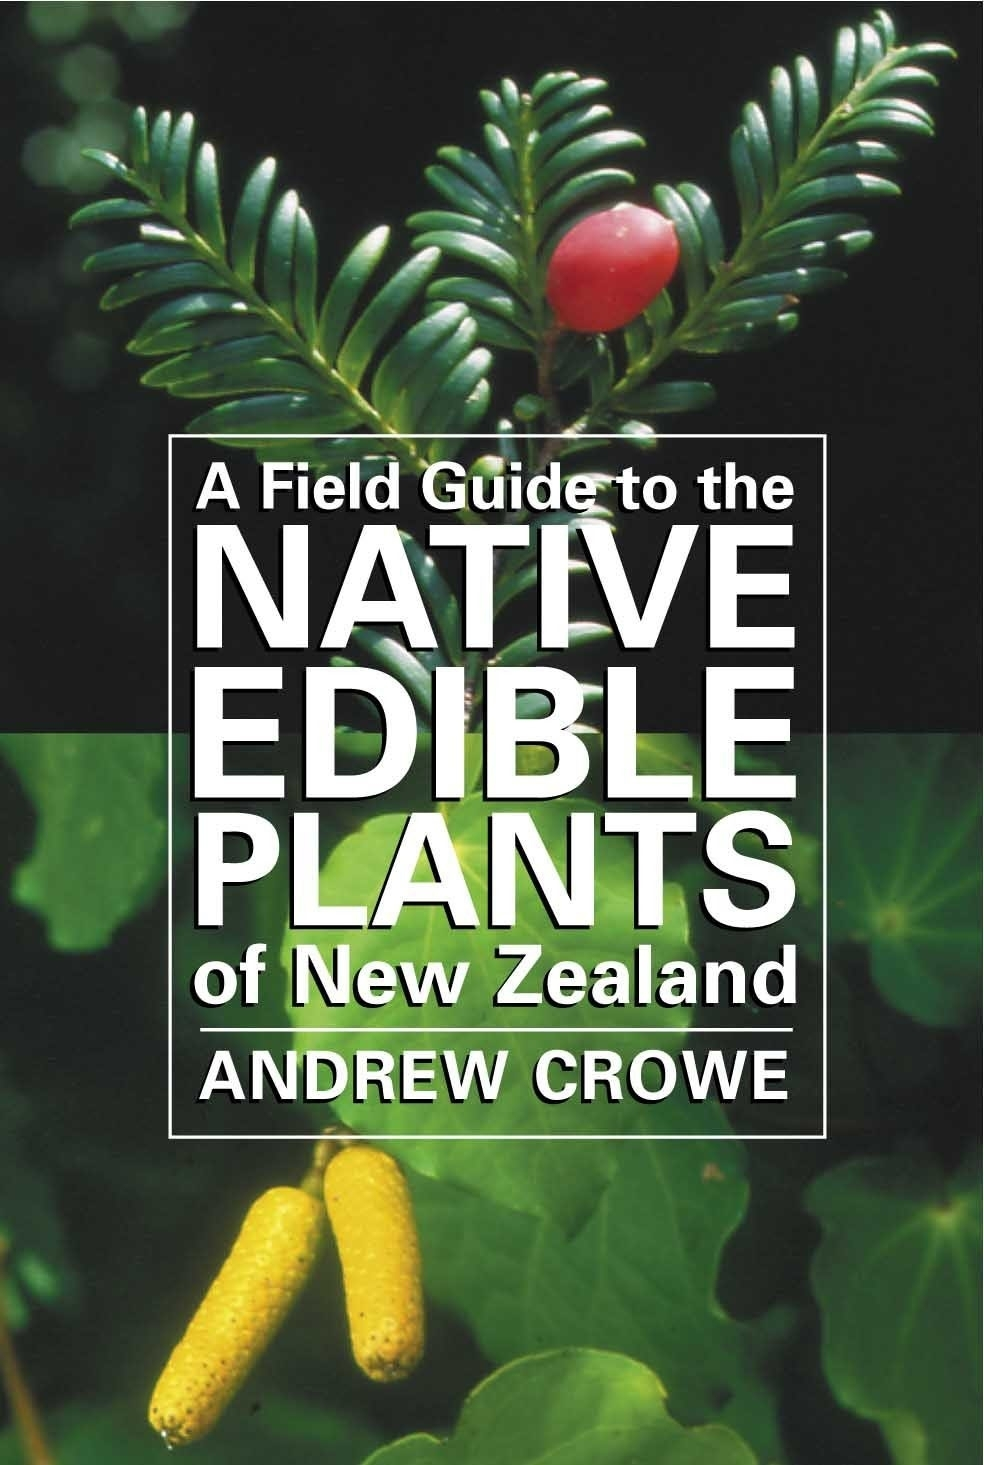 A Field Guide to the Native Edible Plants of New Zealand by Andrew Crowe image